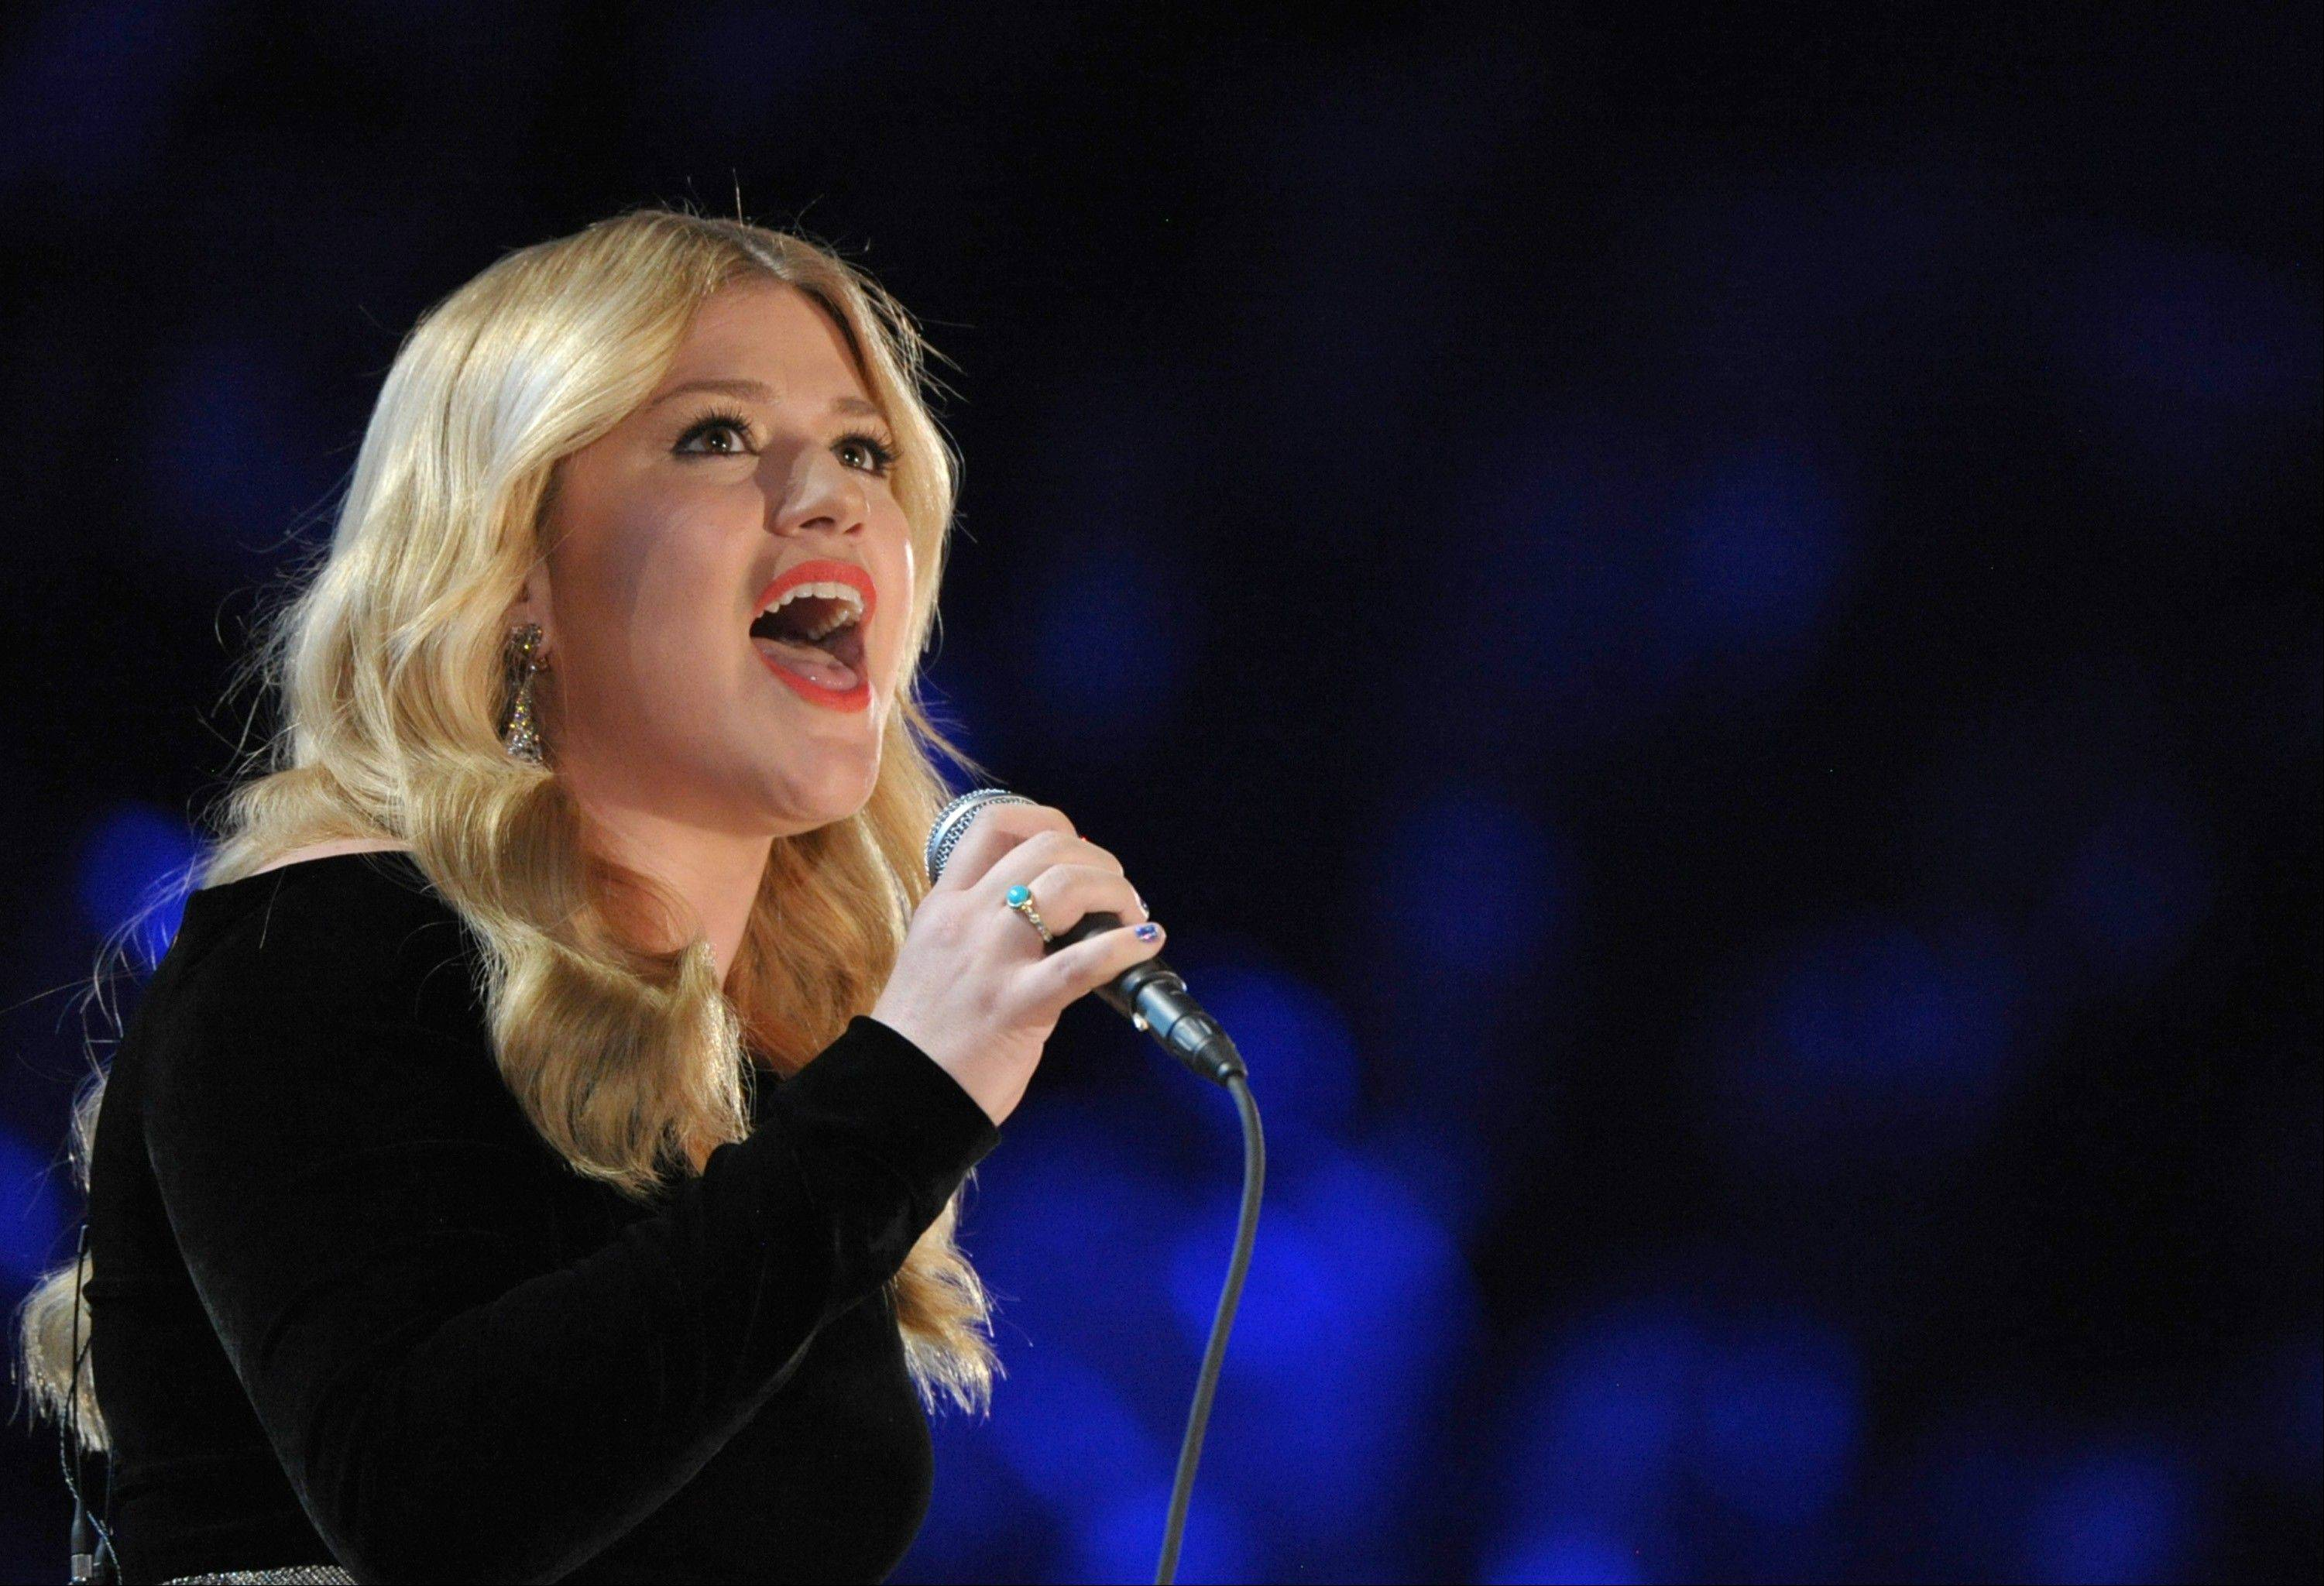 Kelly Clarkson will join co-hosts Blake Shelton and Luke Bryan in performing at this year�s Academy of Country Music Awards.